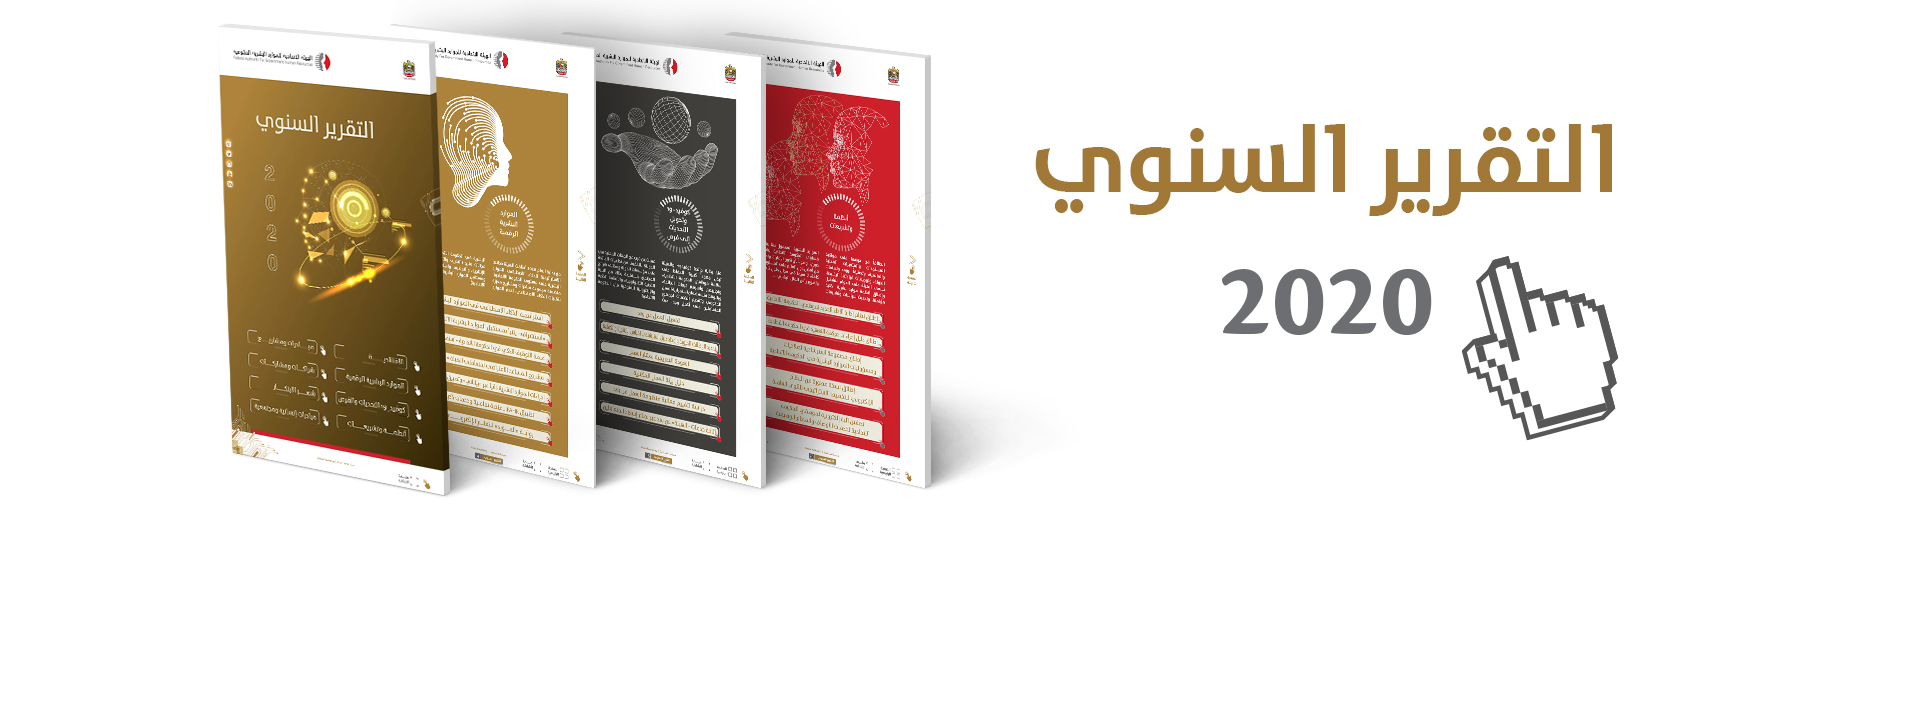 FAHR Annual Report 2020